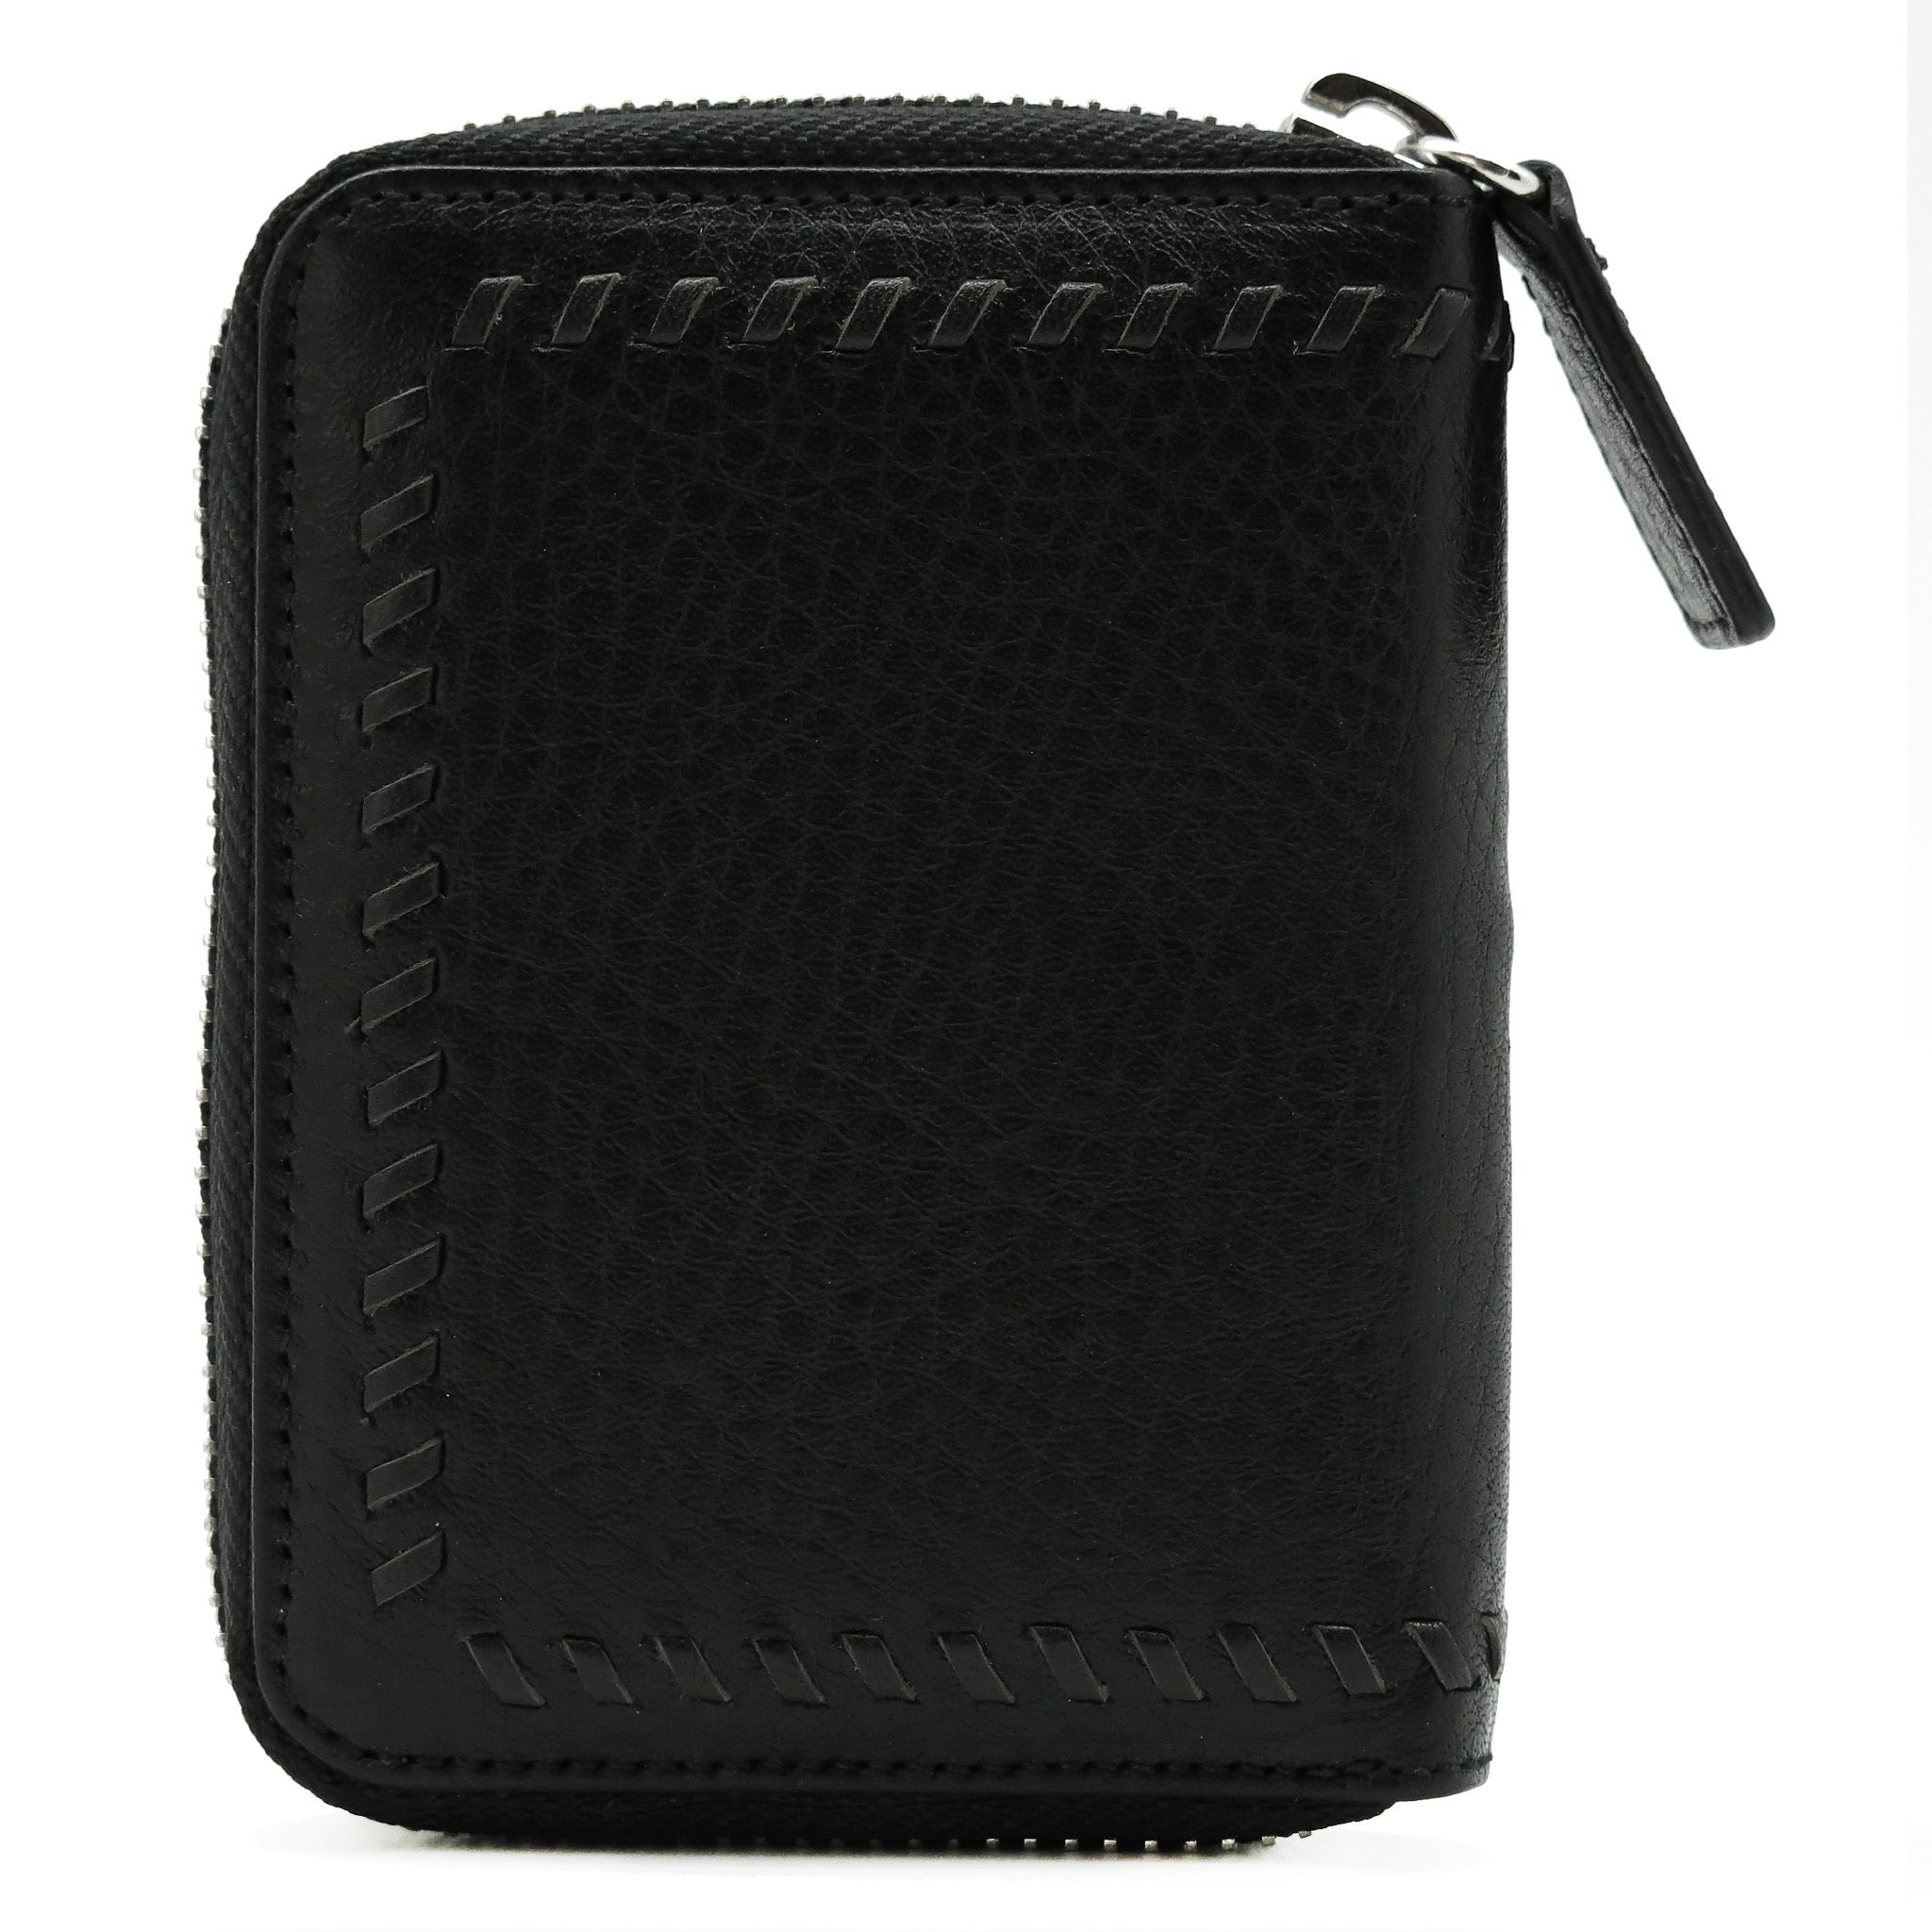 handmade leather accessories cardholder black